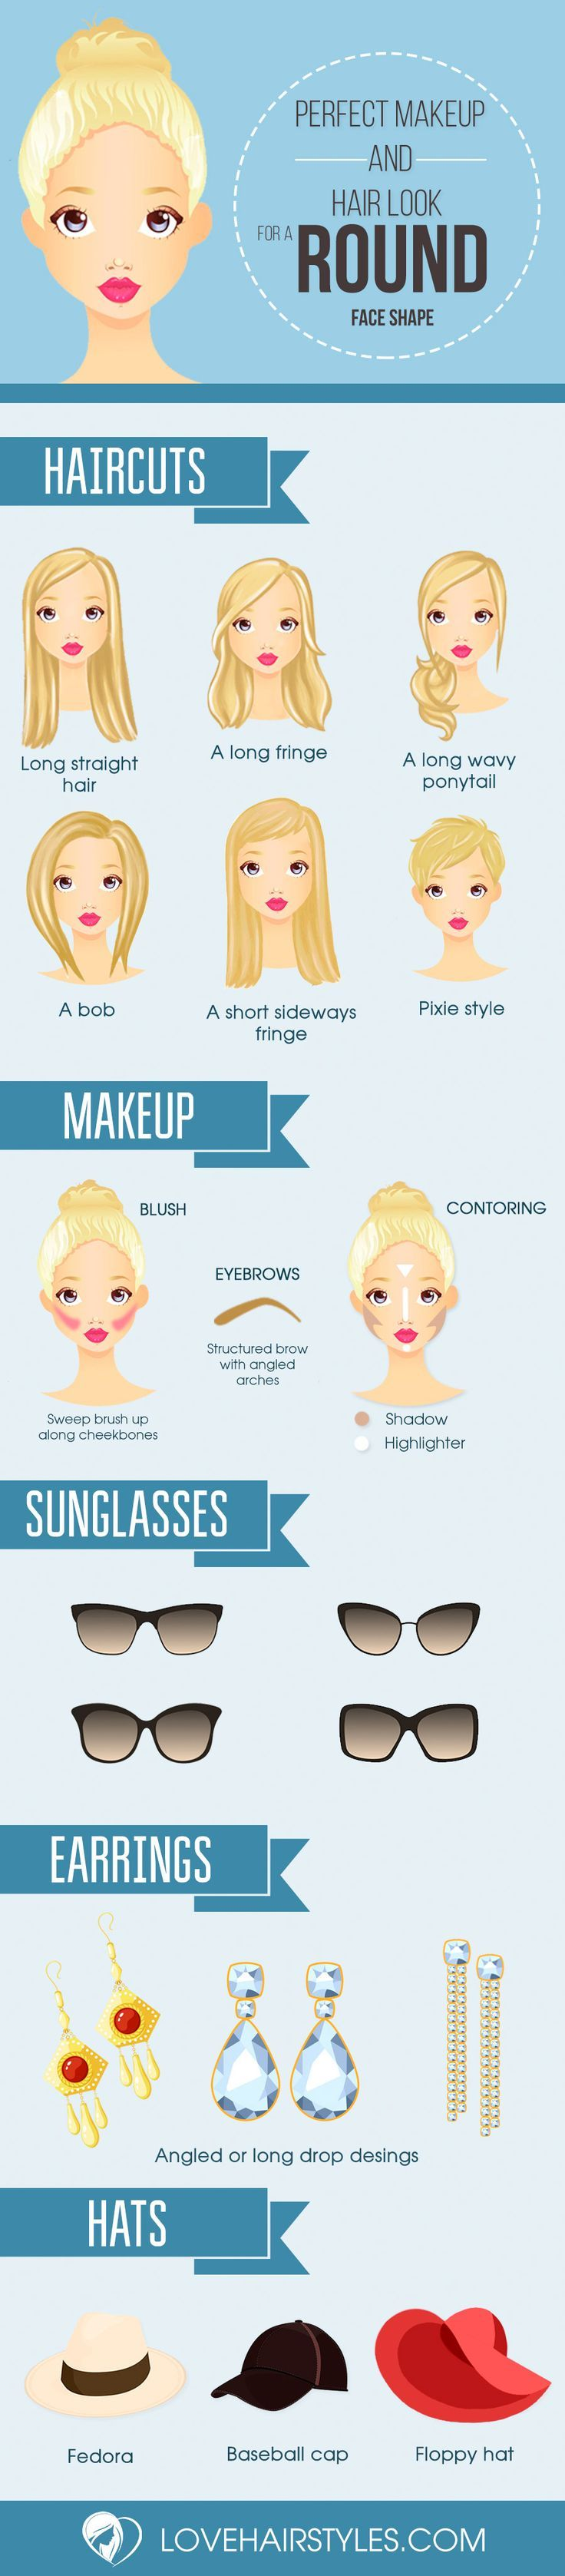 18 Best Hairstyles For Round Faces With Images Round Face Makeup Round Face Haircuts Round Face Shape